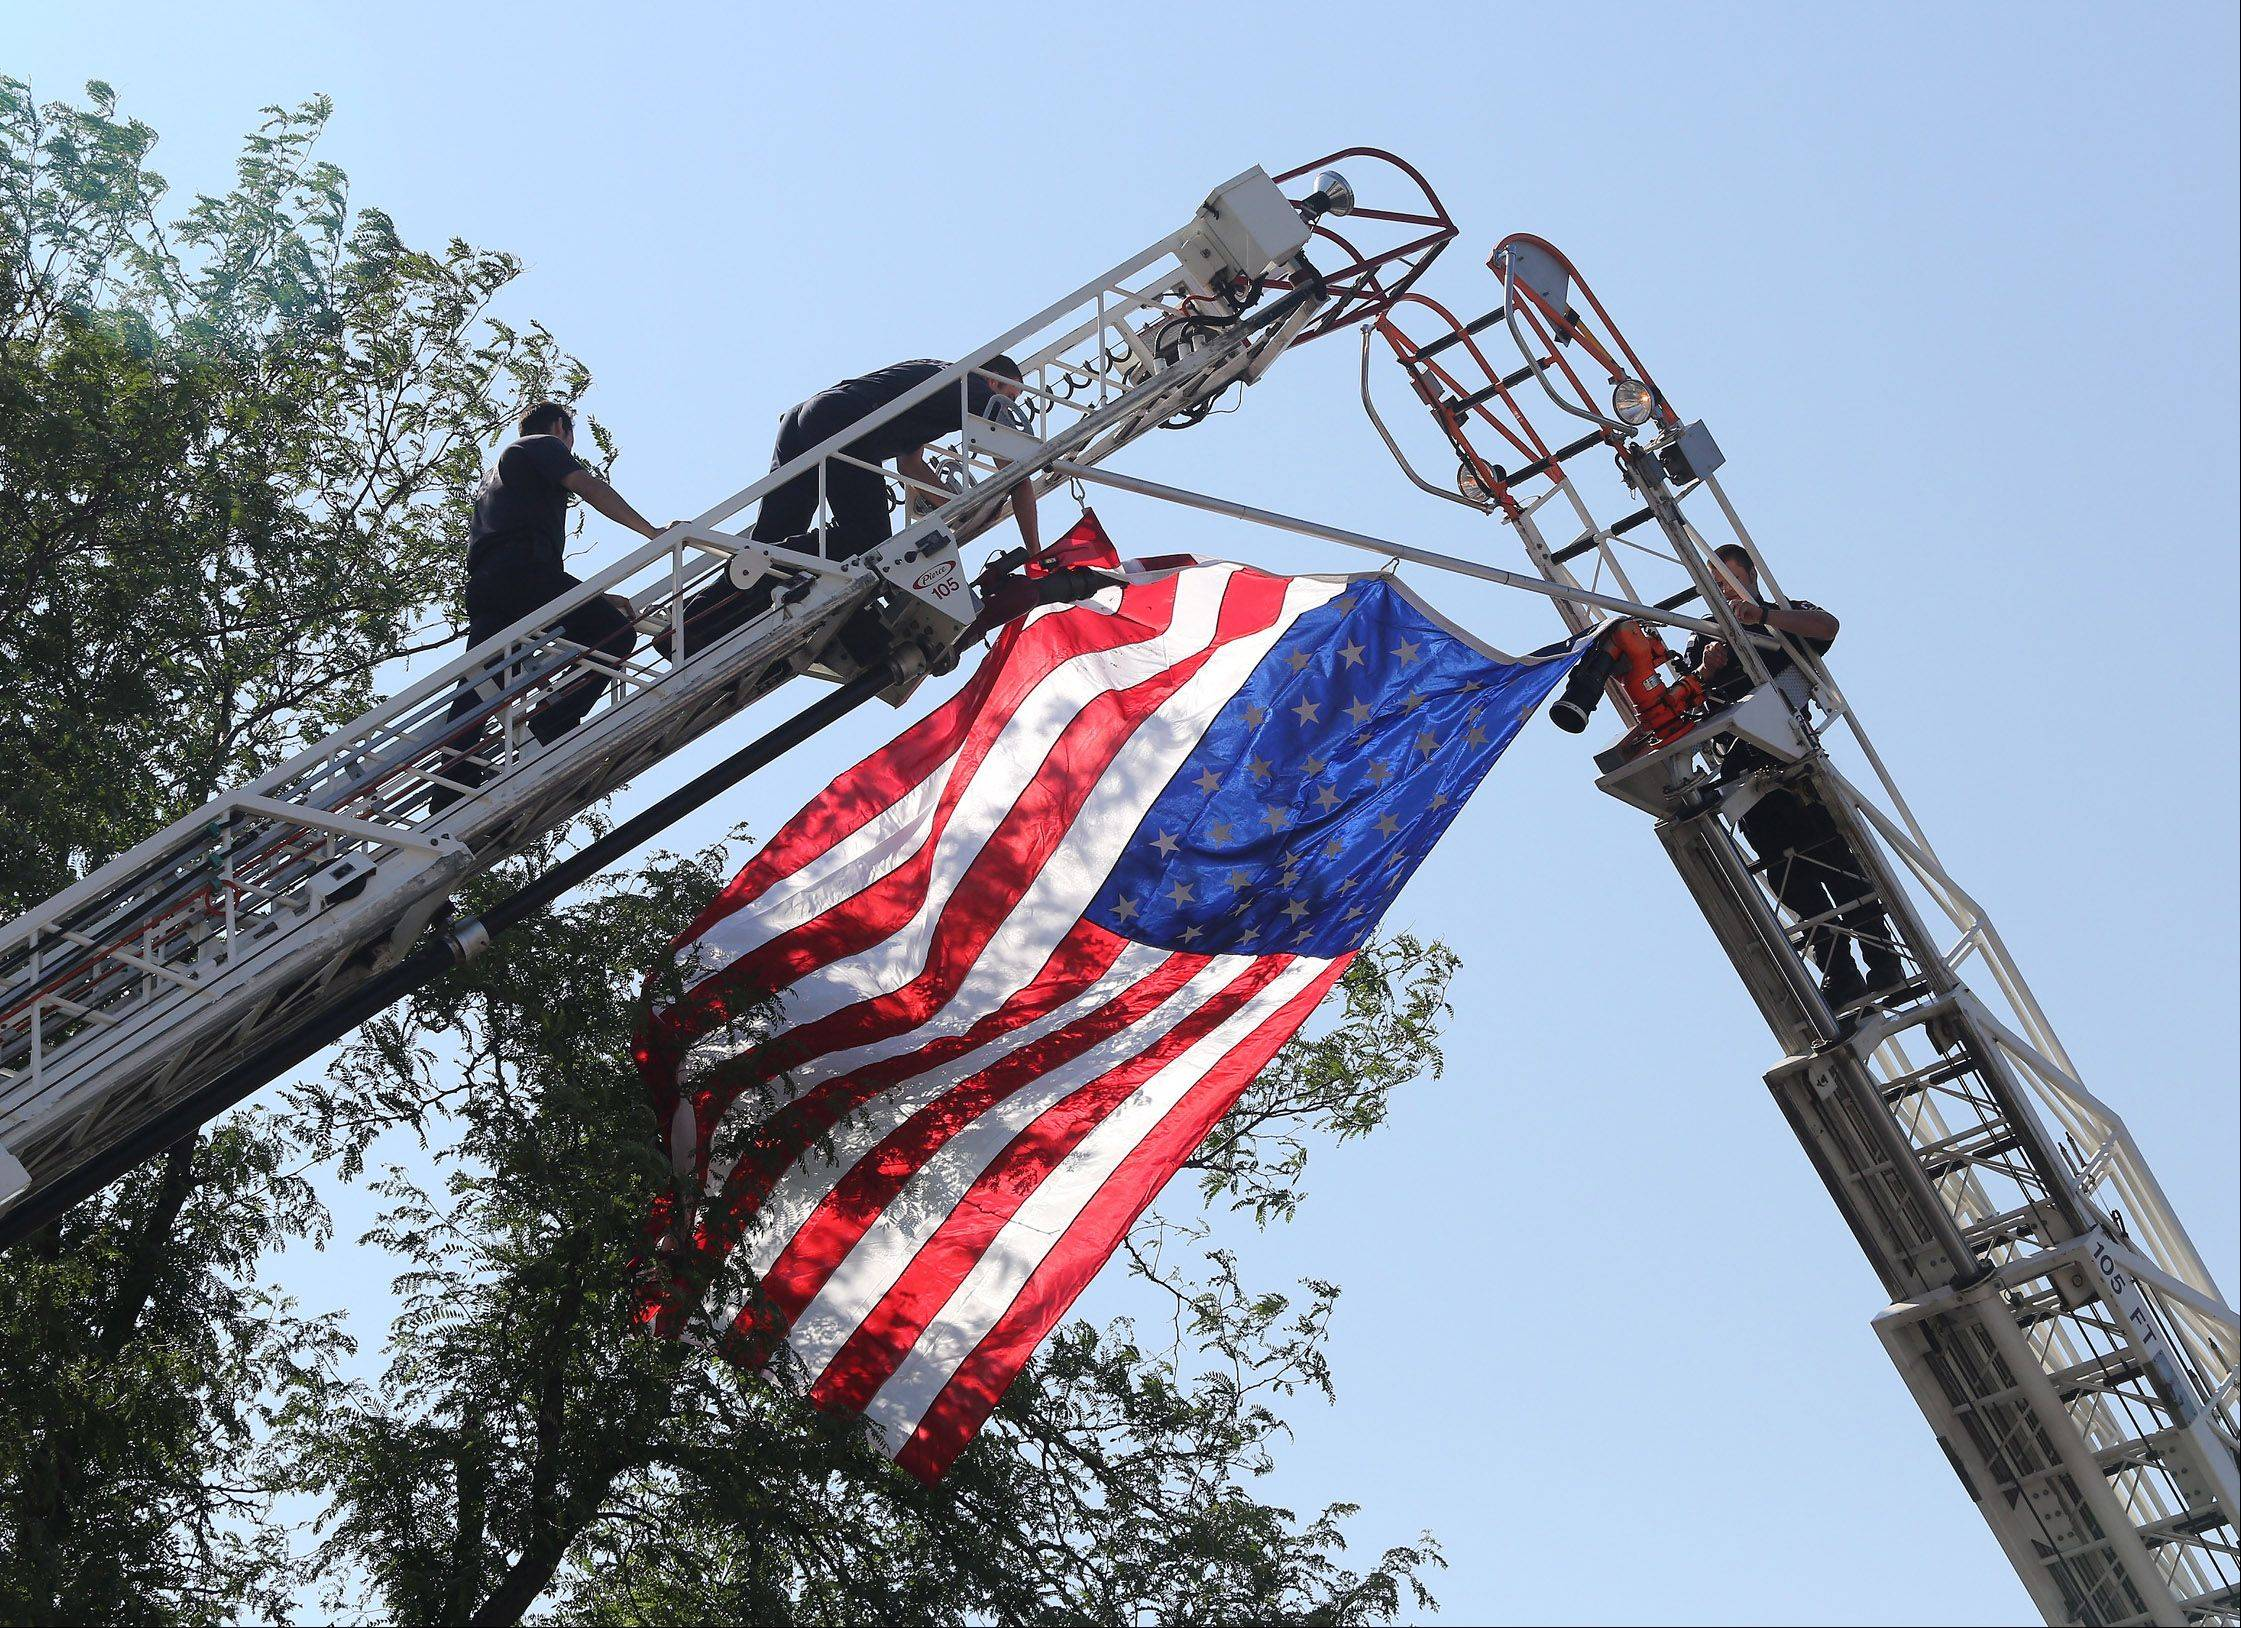 Zion Firefighters display an American flag over the funeral home during the memorial service for Anthony Rose on Thursday at Congdon Funeral Home in Zion. Rose was one of 19 Granite Mountain Hotshots killed June 30 battling a wildfire in Arizona.